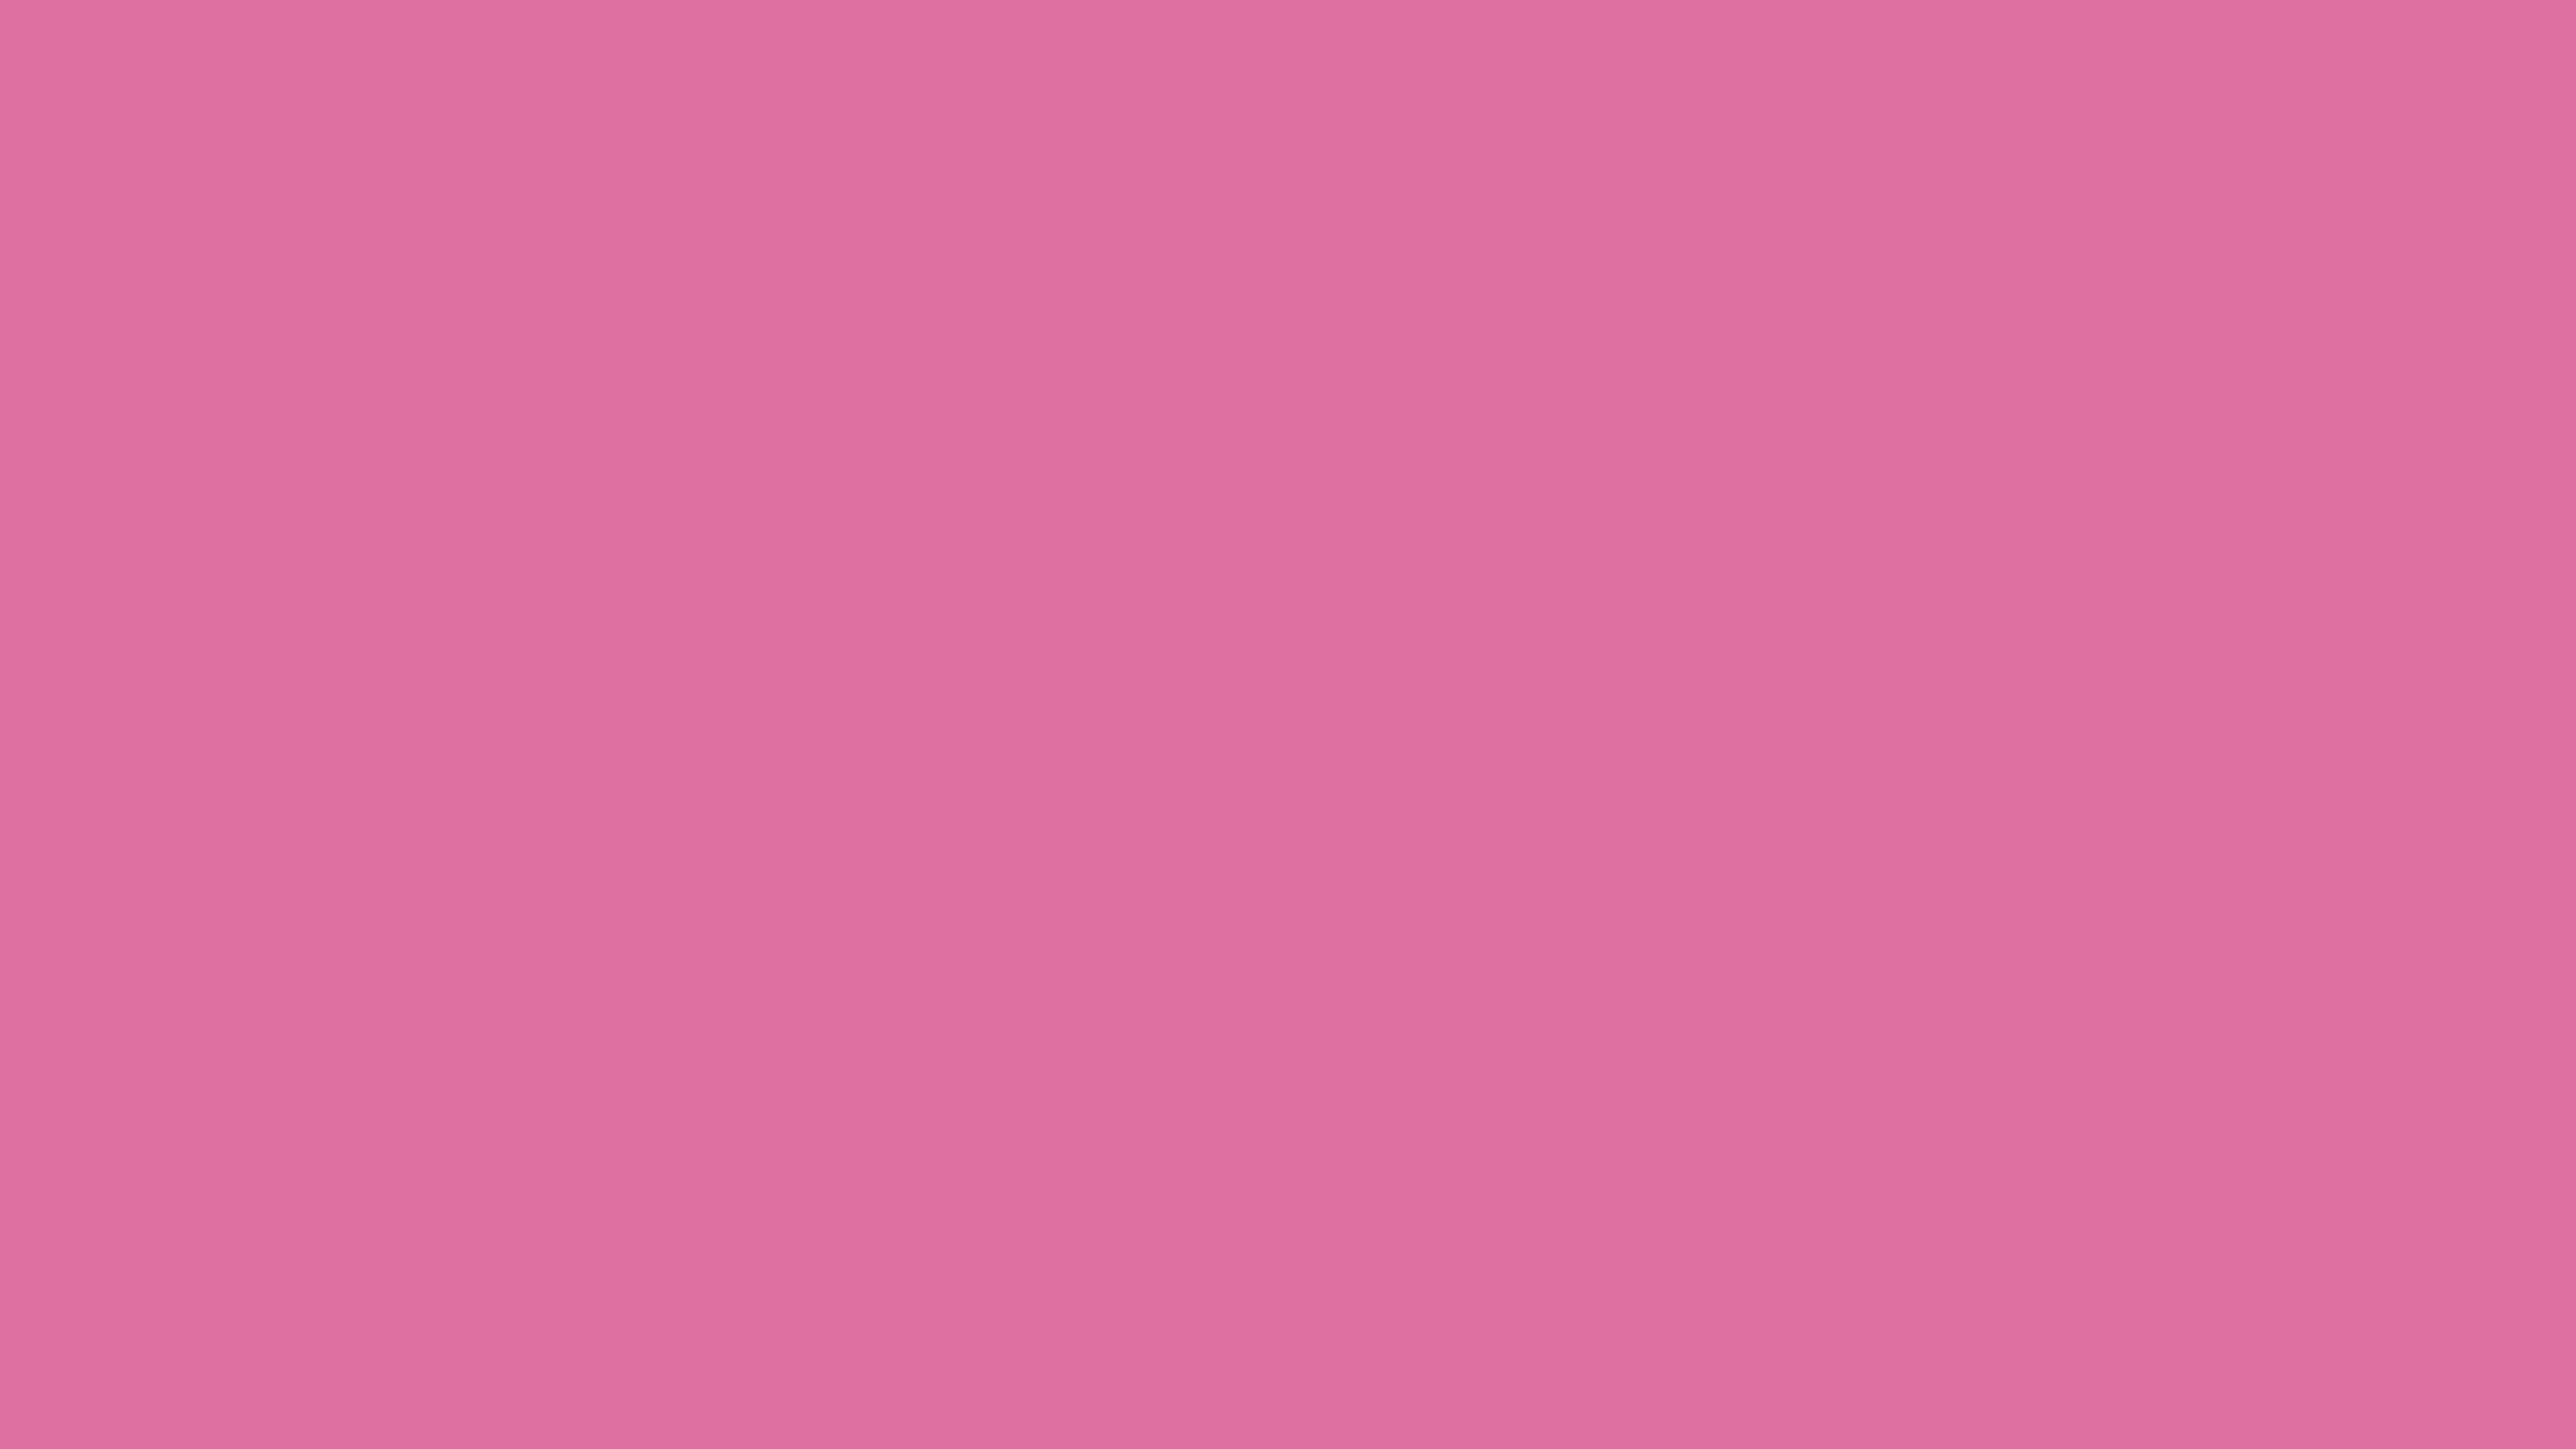 4096x2304 China Pink Solid Color Background